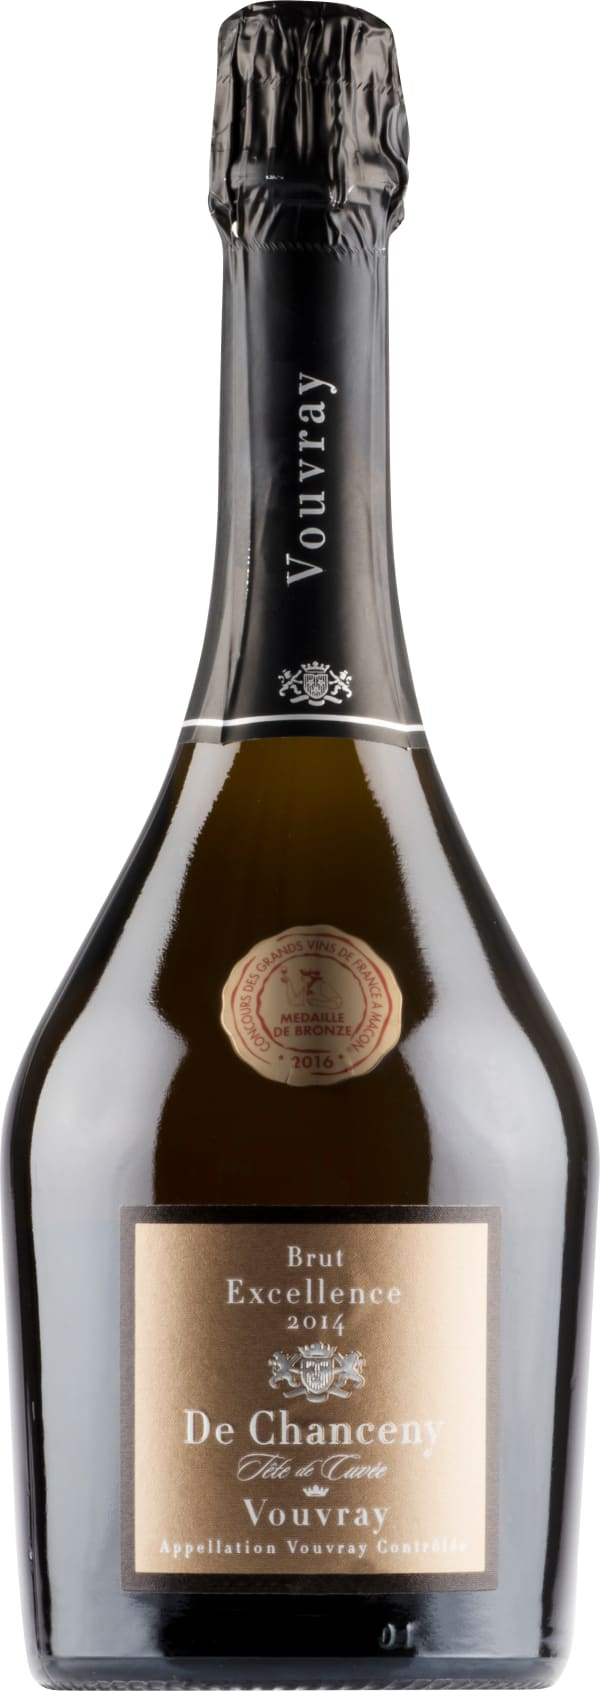 De Chanceny Excellence Vouvray Brut 2017